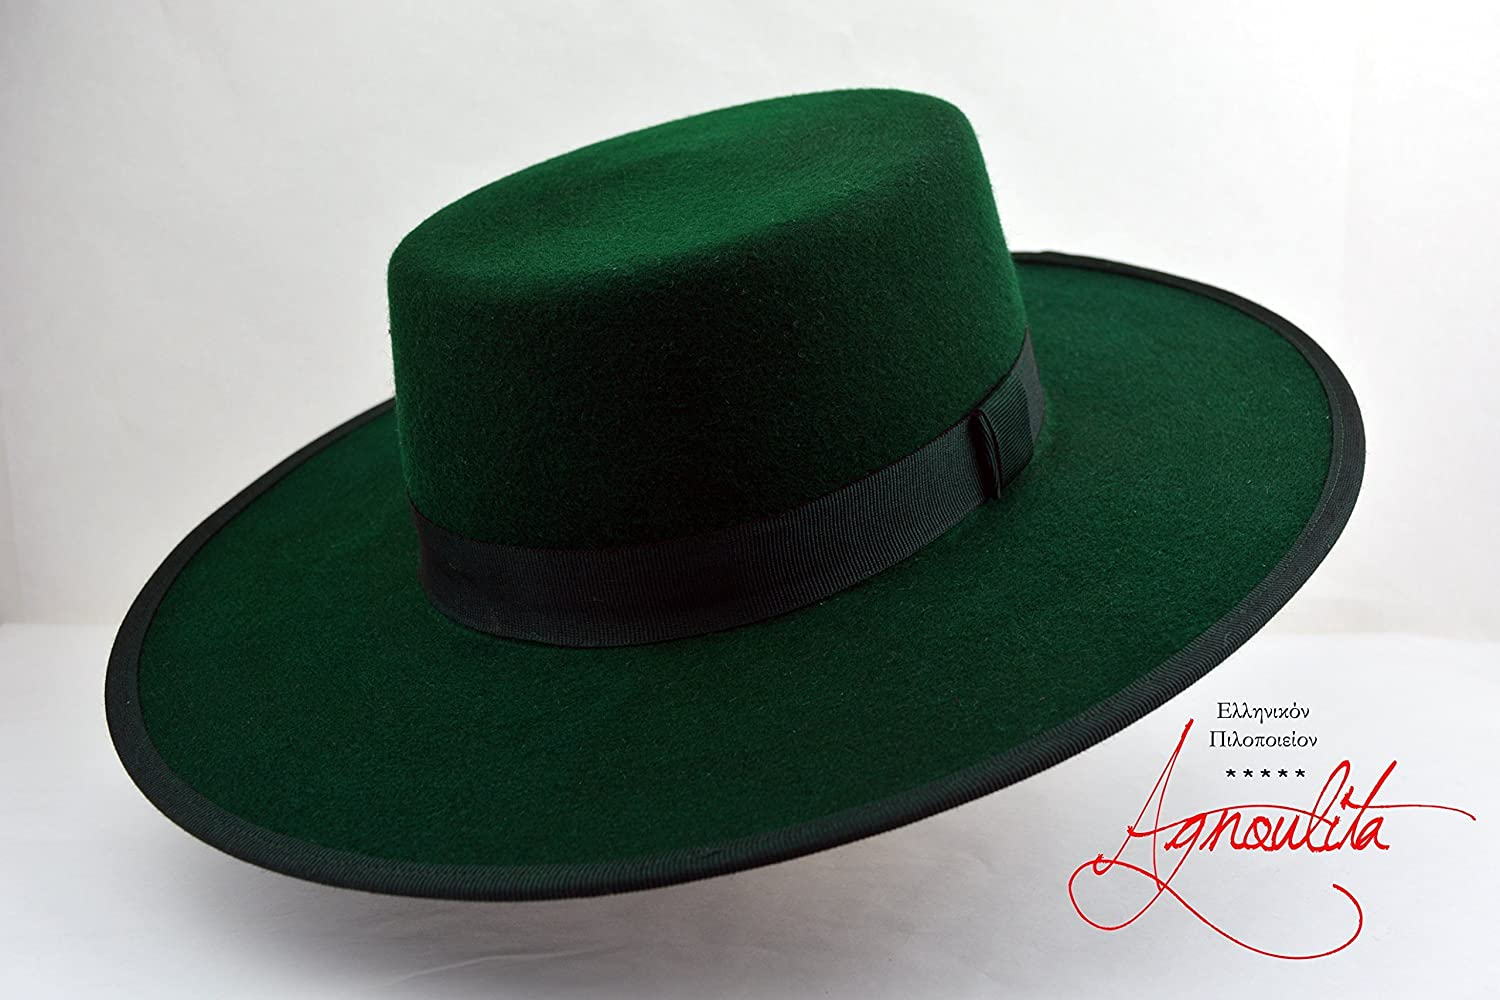 The Emerald - Emerald Green Wool Felt Flat Crown Bolero Hat - Wide Brim - Men Women